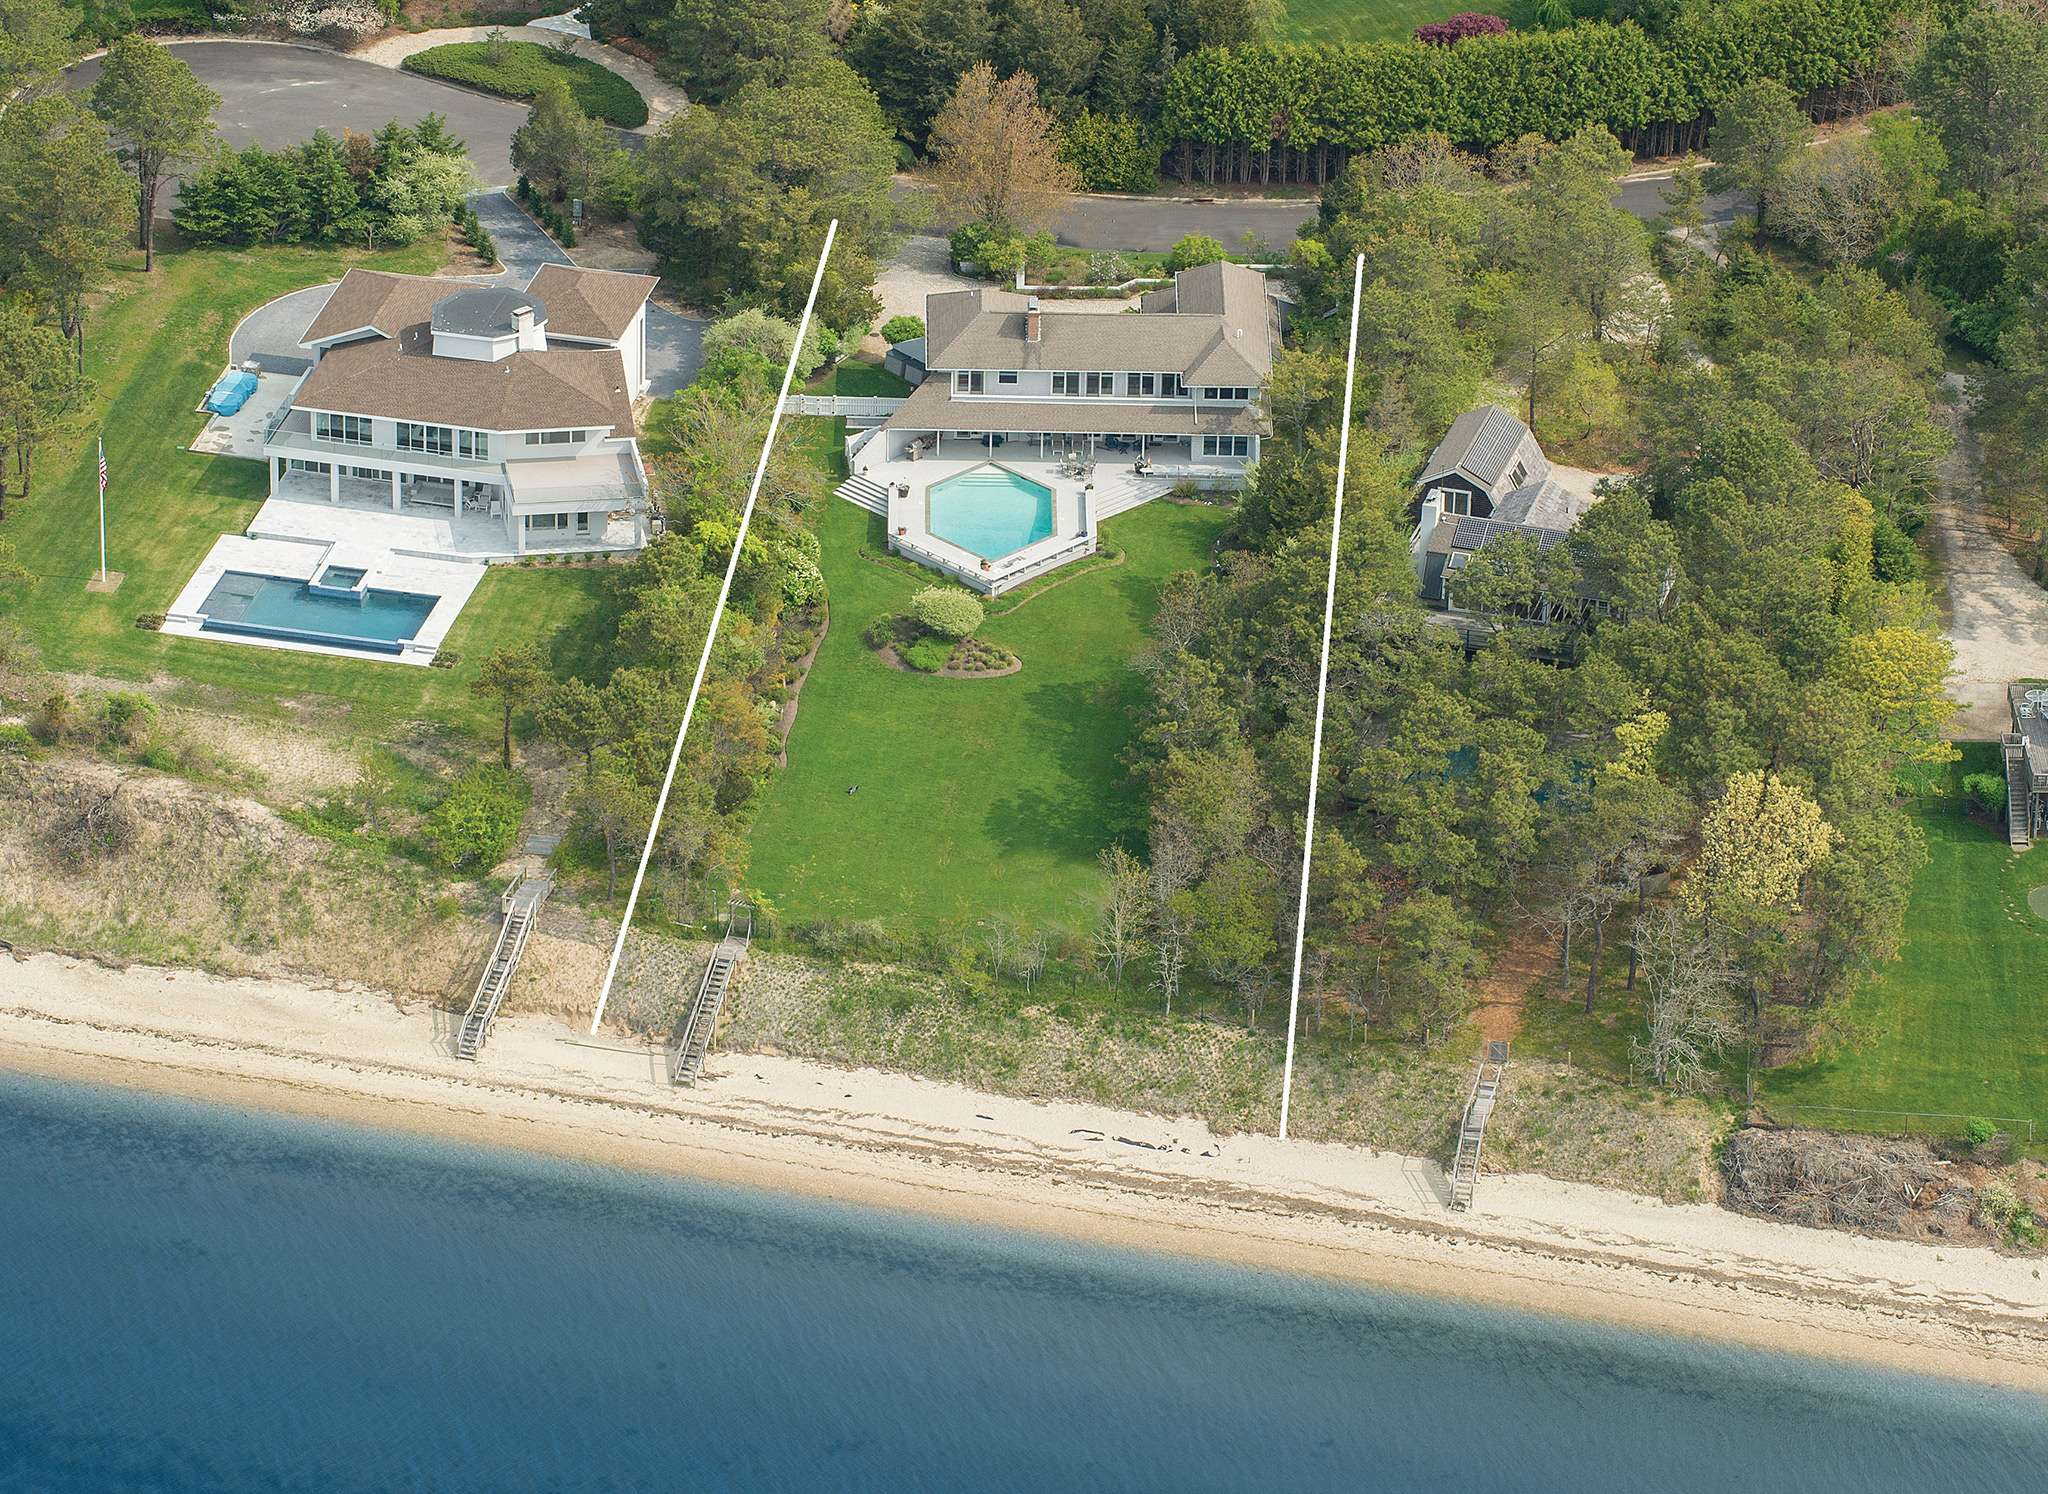 Single Family Home for Sale at Hamptons Waterfront With Spectacular Views 20 Sandringham Lane, Southampton, New York